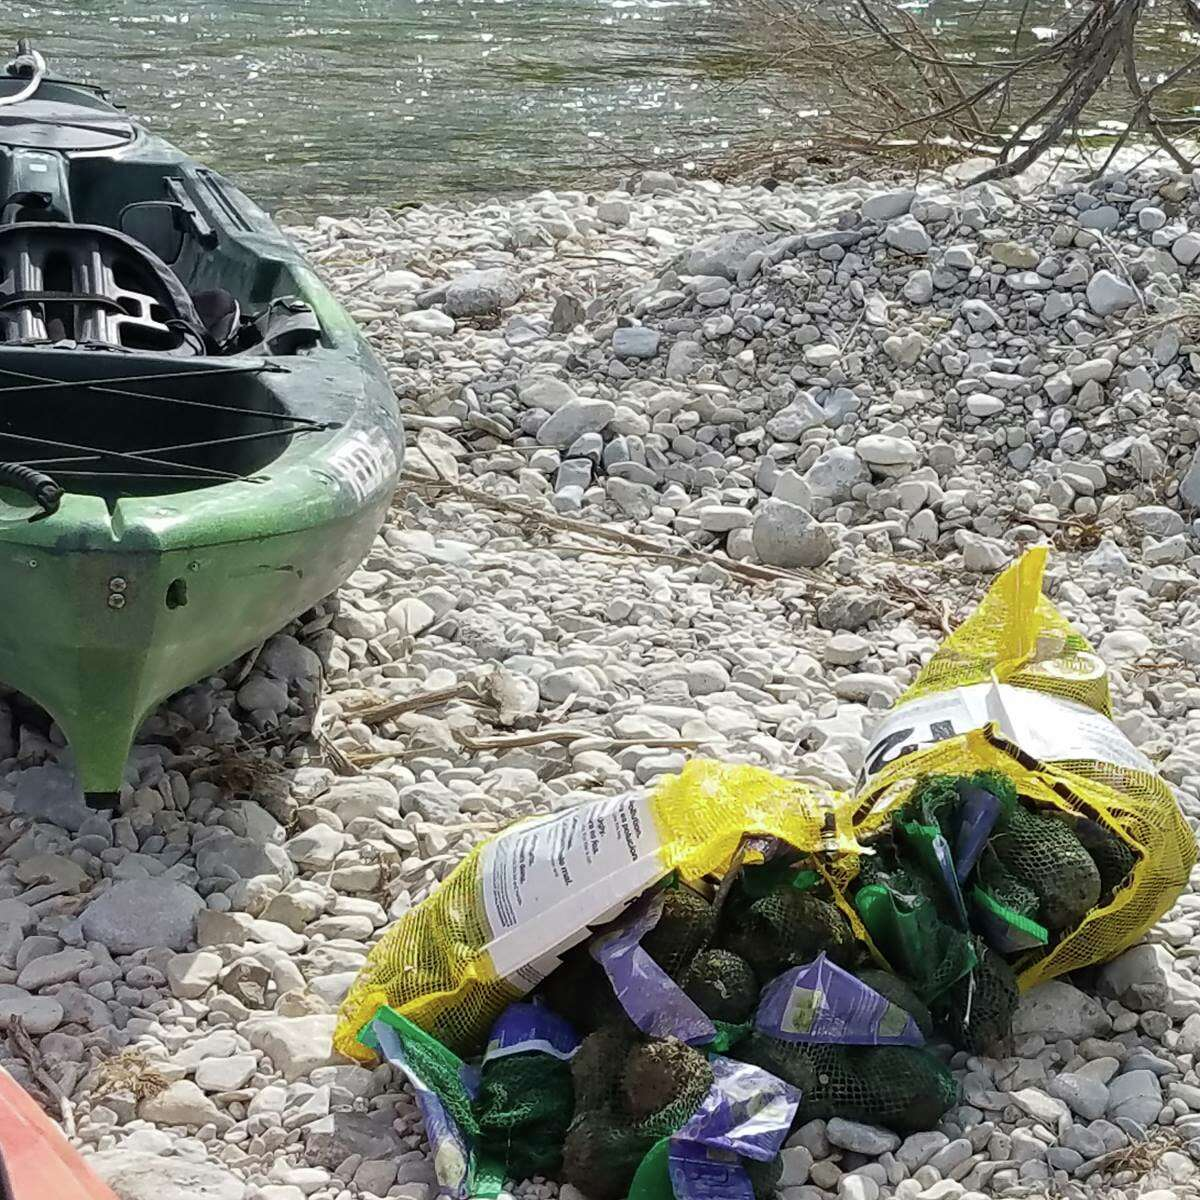 A truck crash spilled 42,000 lbs of avocados into the South Llano River near Junction, according to the Texas Parks and Wildlife.